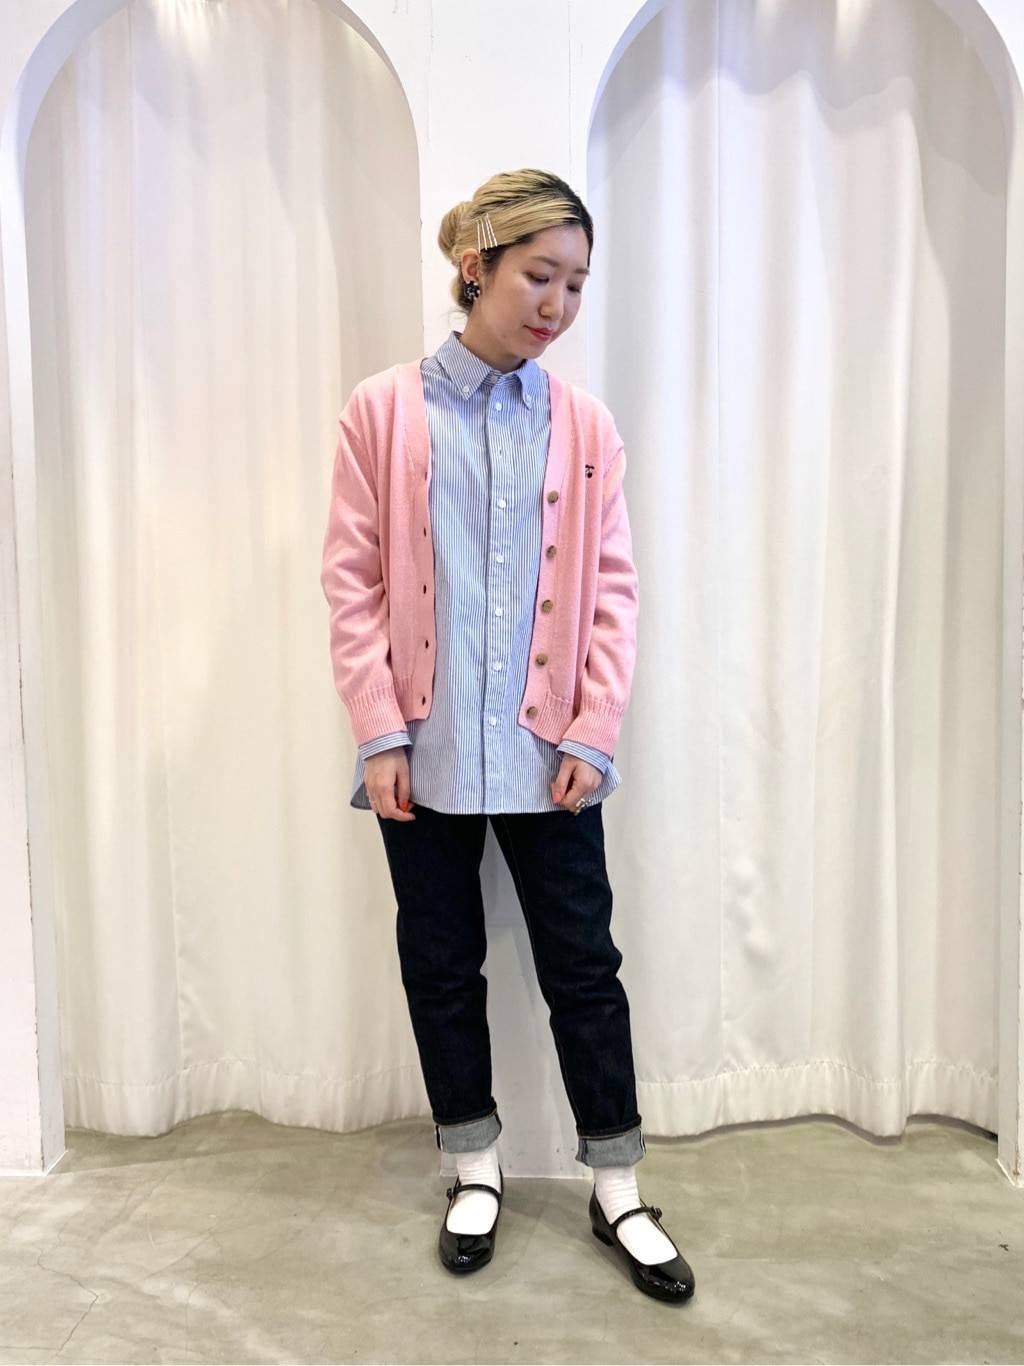 Dot and Stripes CHILD WOMAN ラフォーレ原宿 身長:160cm 2021.02.08